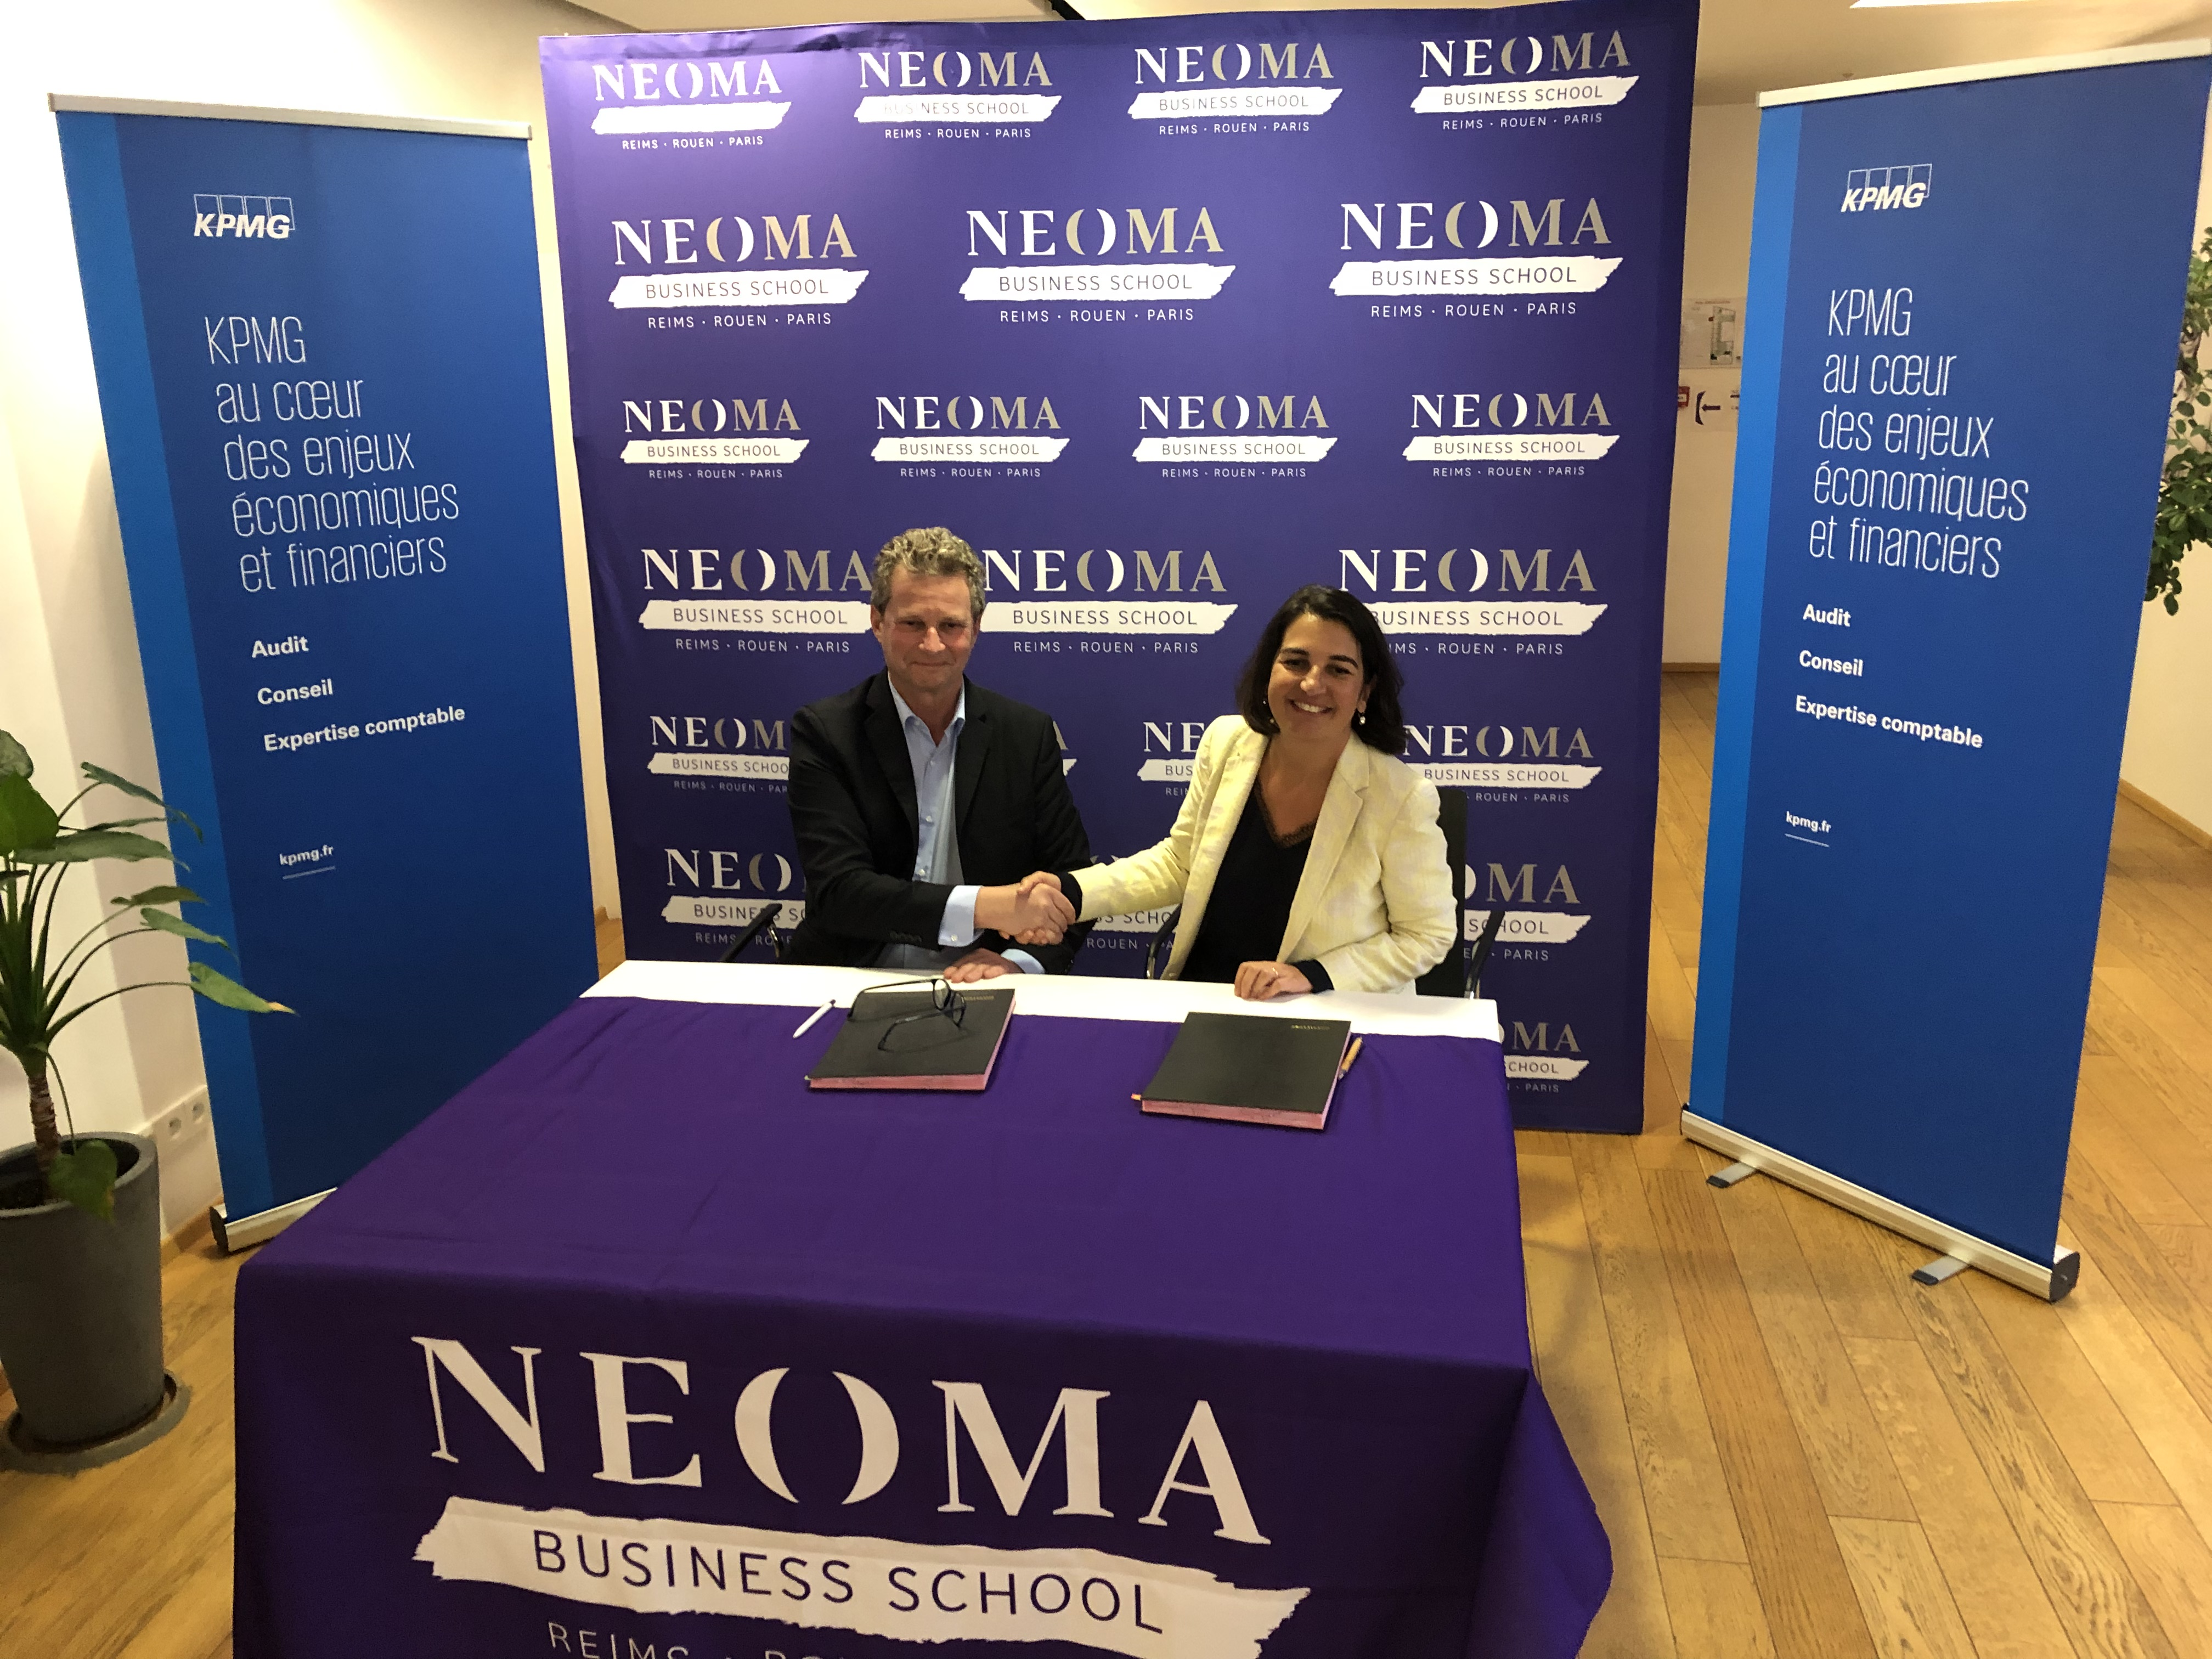 KPMG-NEOMA BS partnership: going even further